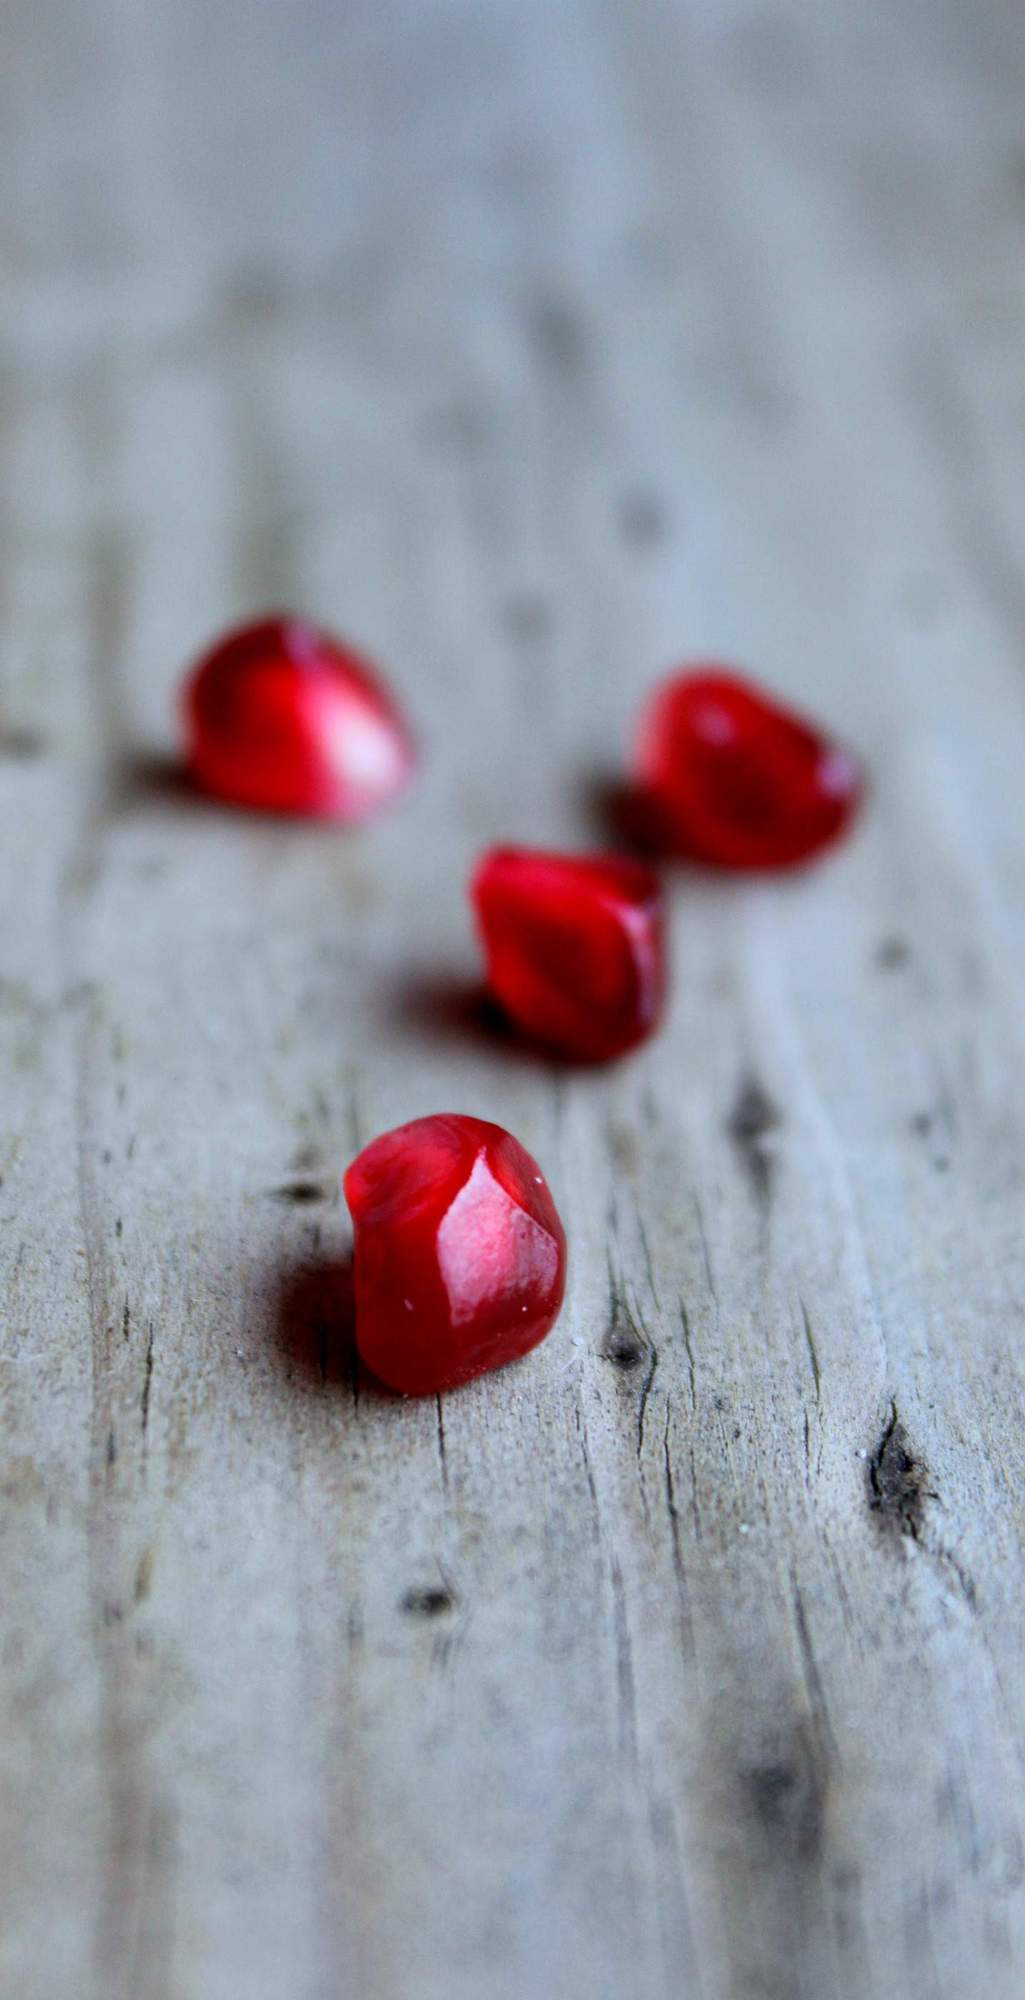 Pomegranate arils on a wooden surface.